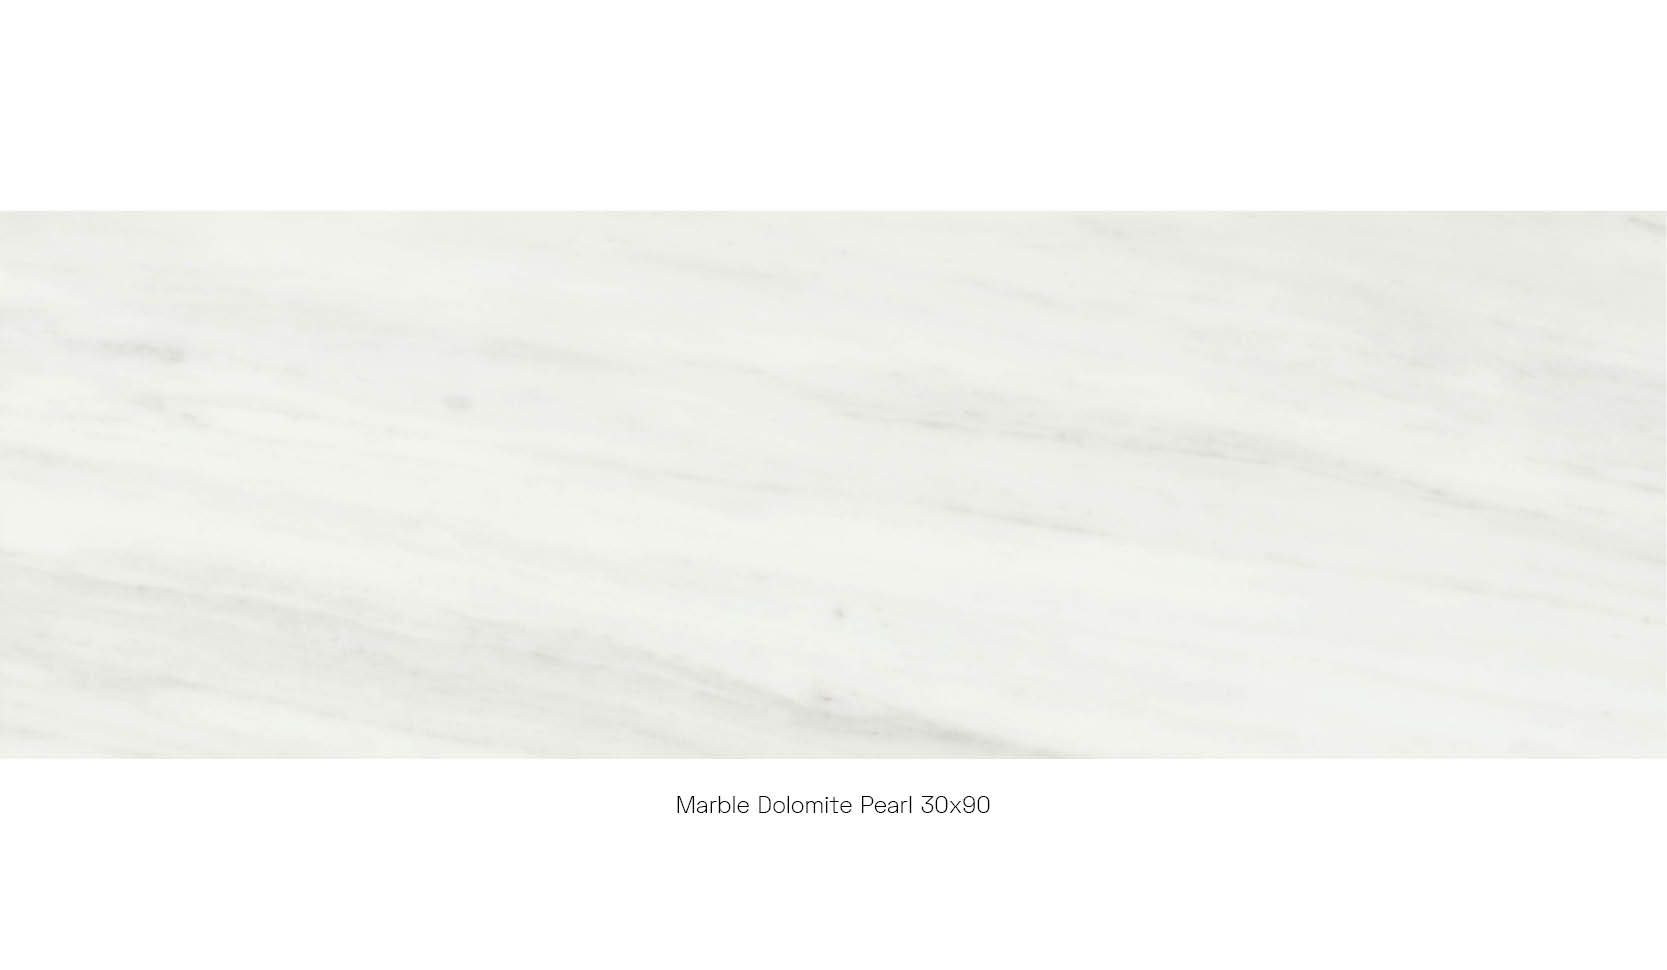 Marble dolomite pearl 30 x 90